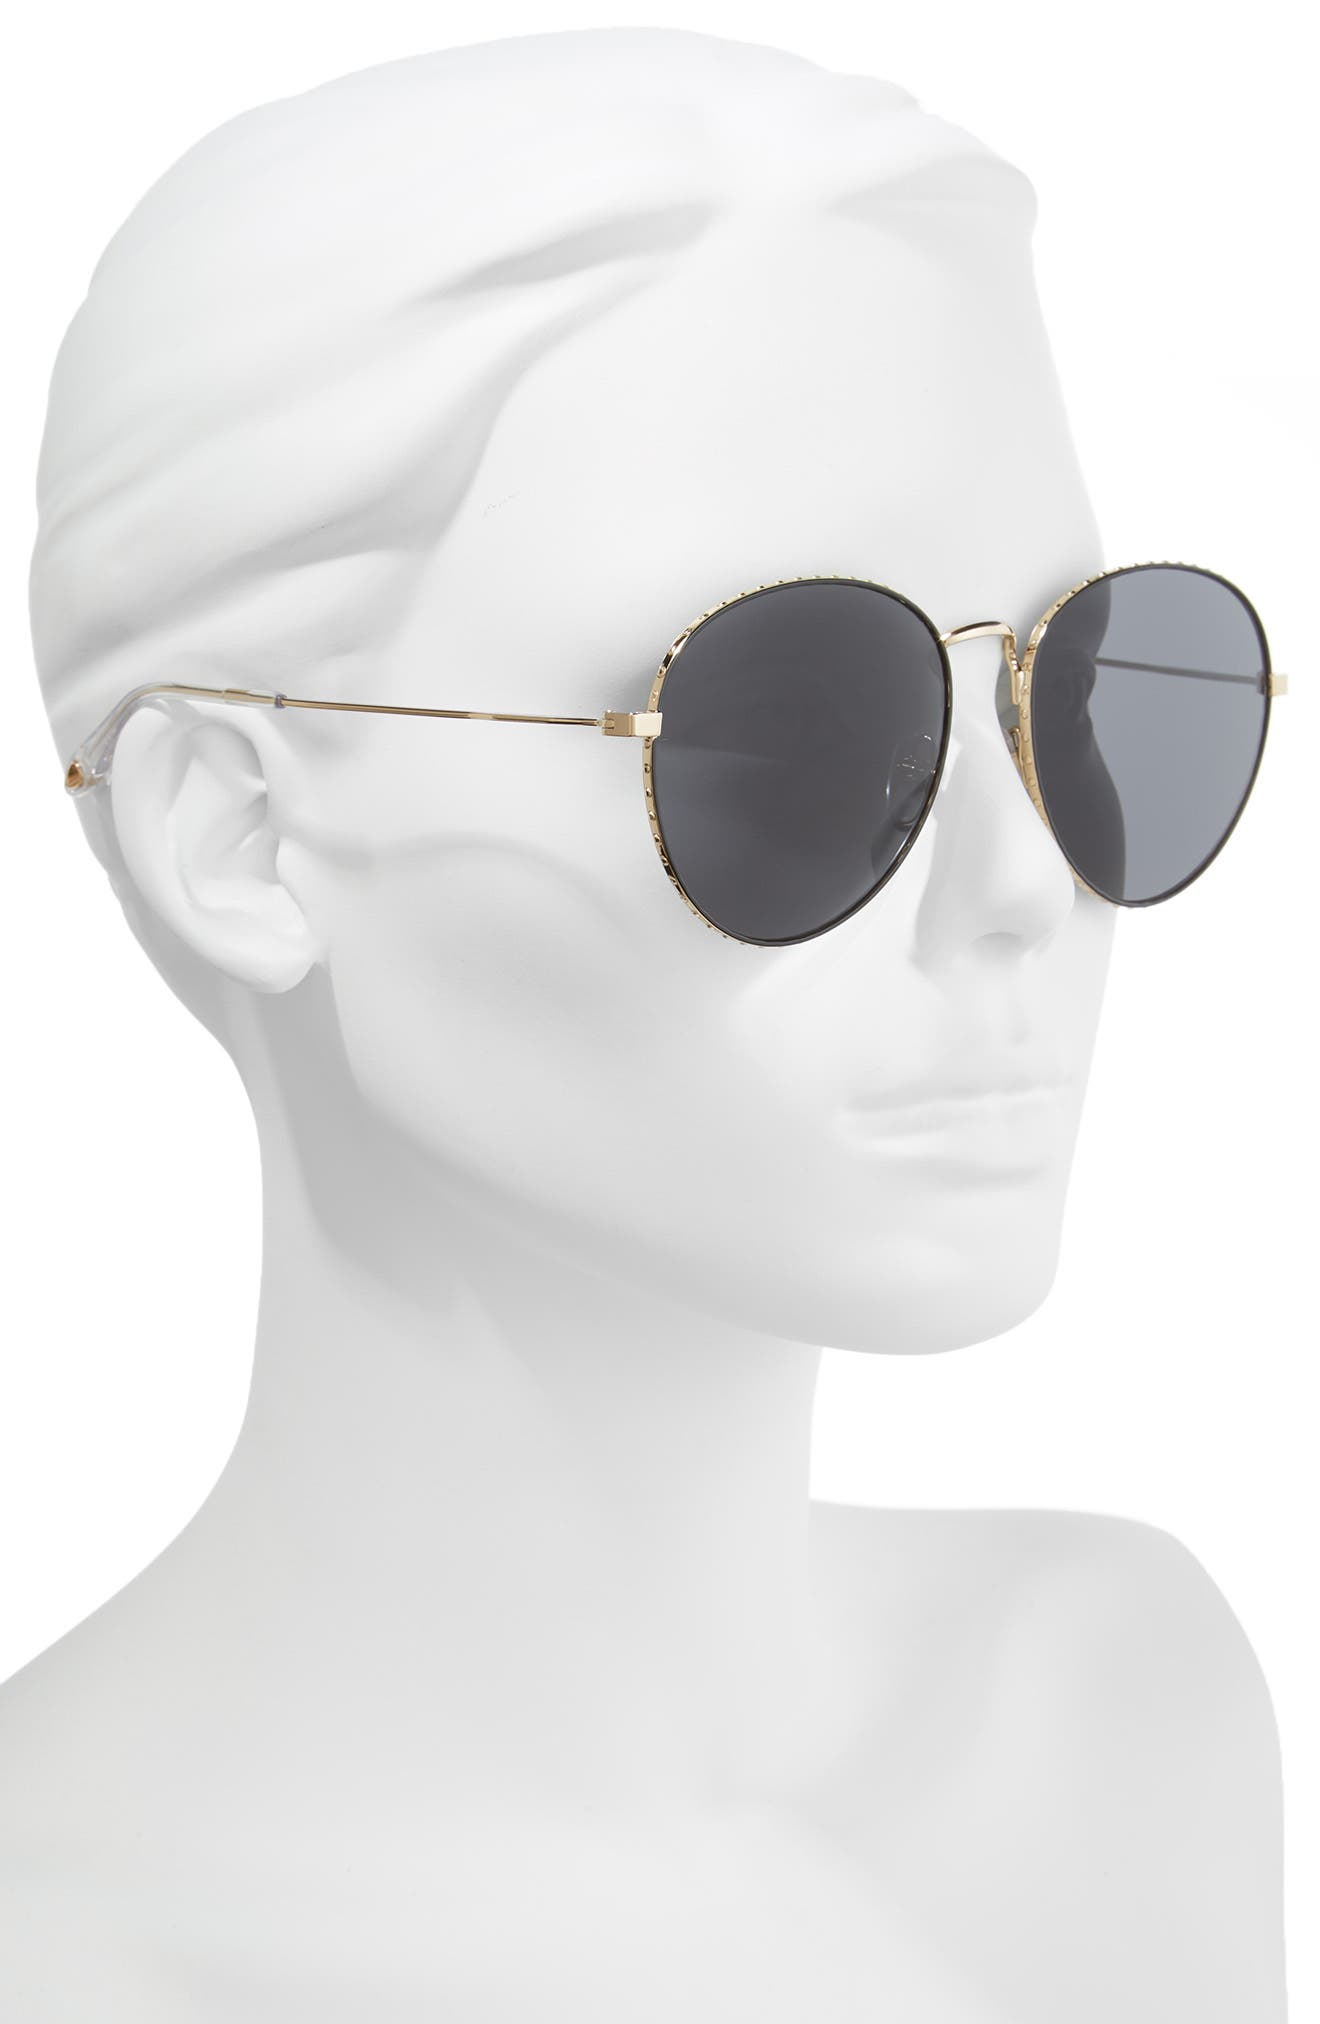 60mm Round Metal Sunglasses,                             Alternate thumbnail 2, color,                             GOLD